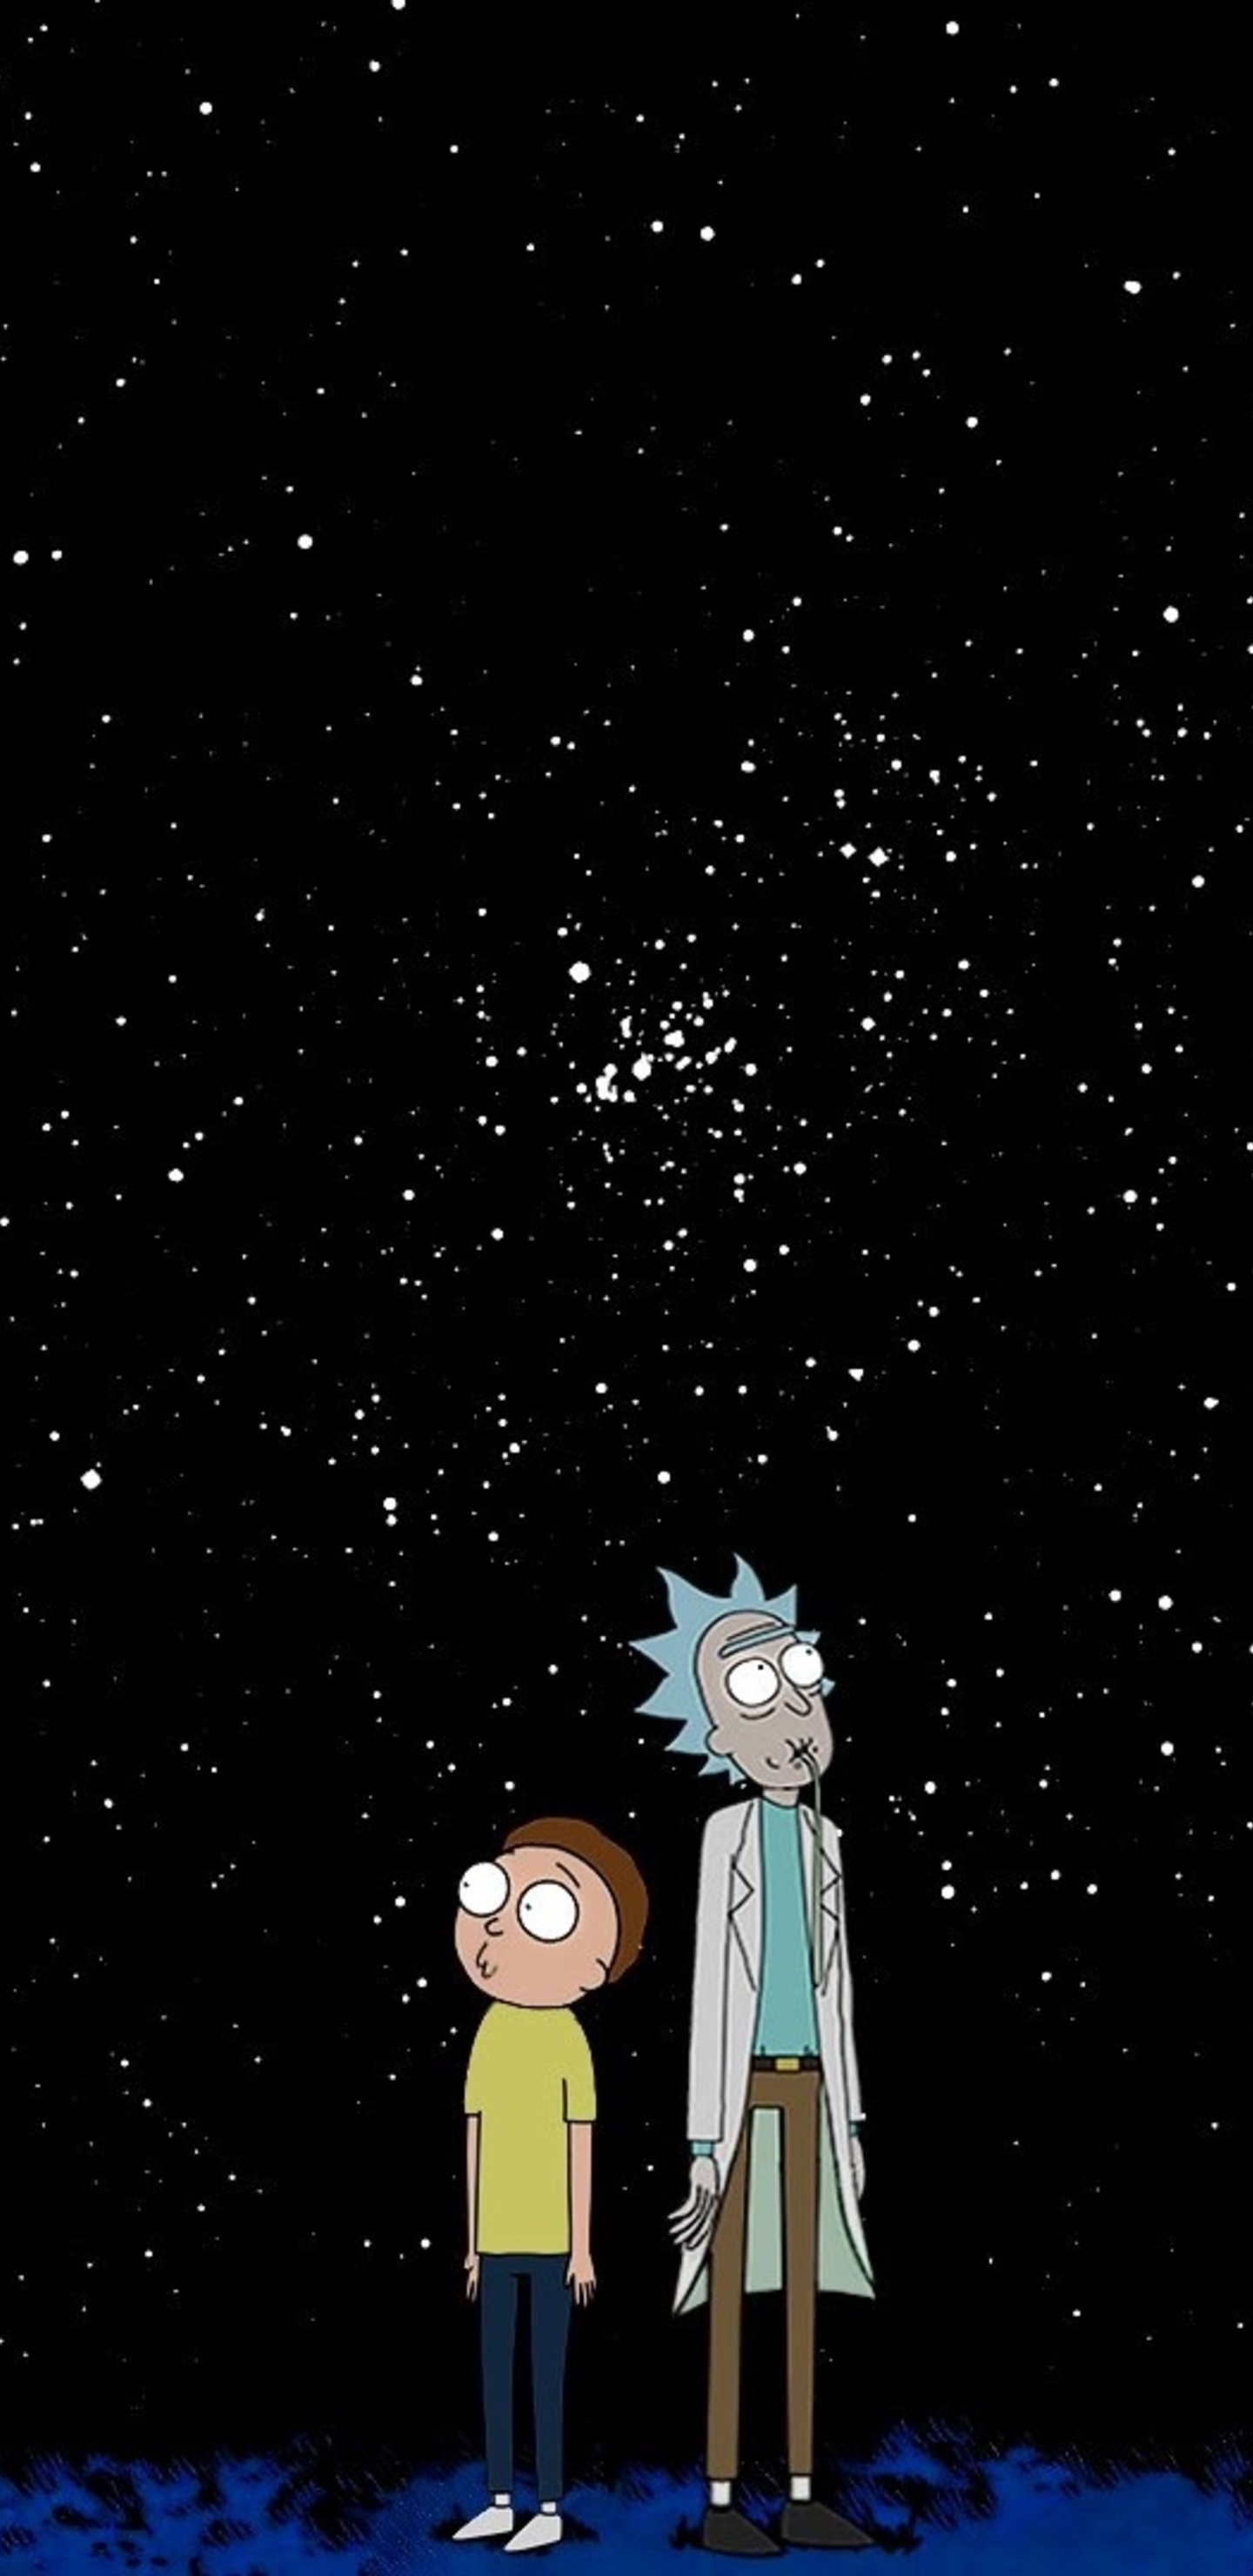 1440x2960 rick and morty hd samsung galaxy note 9 8 s9 s8 - Samsung s9 wallpaper 4k ...